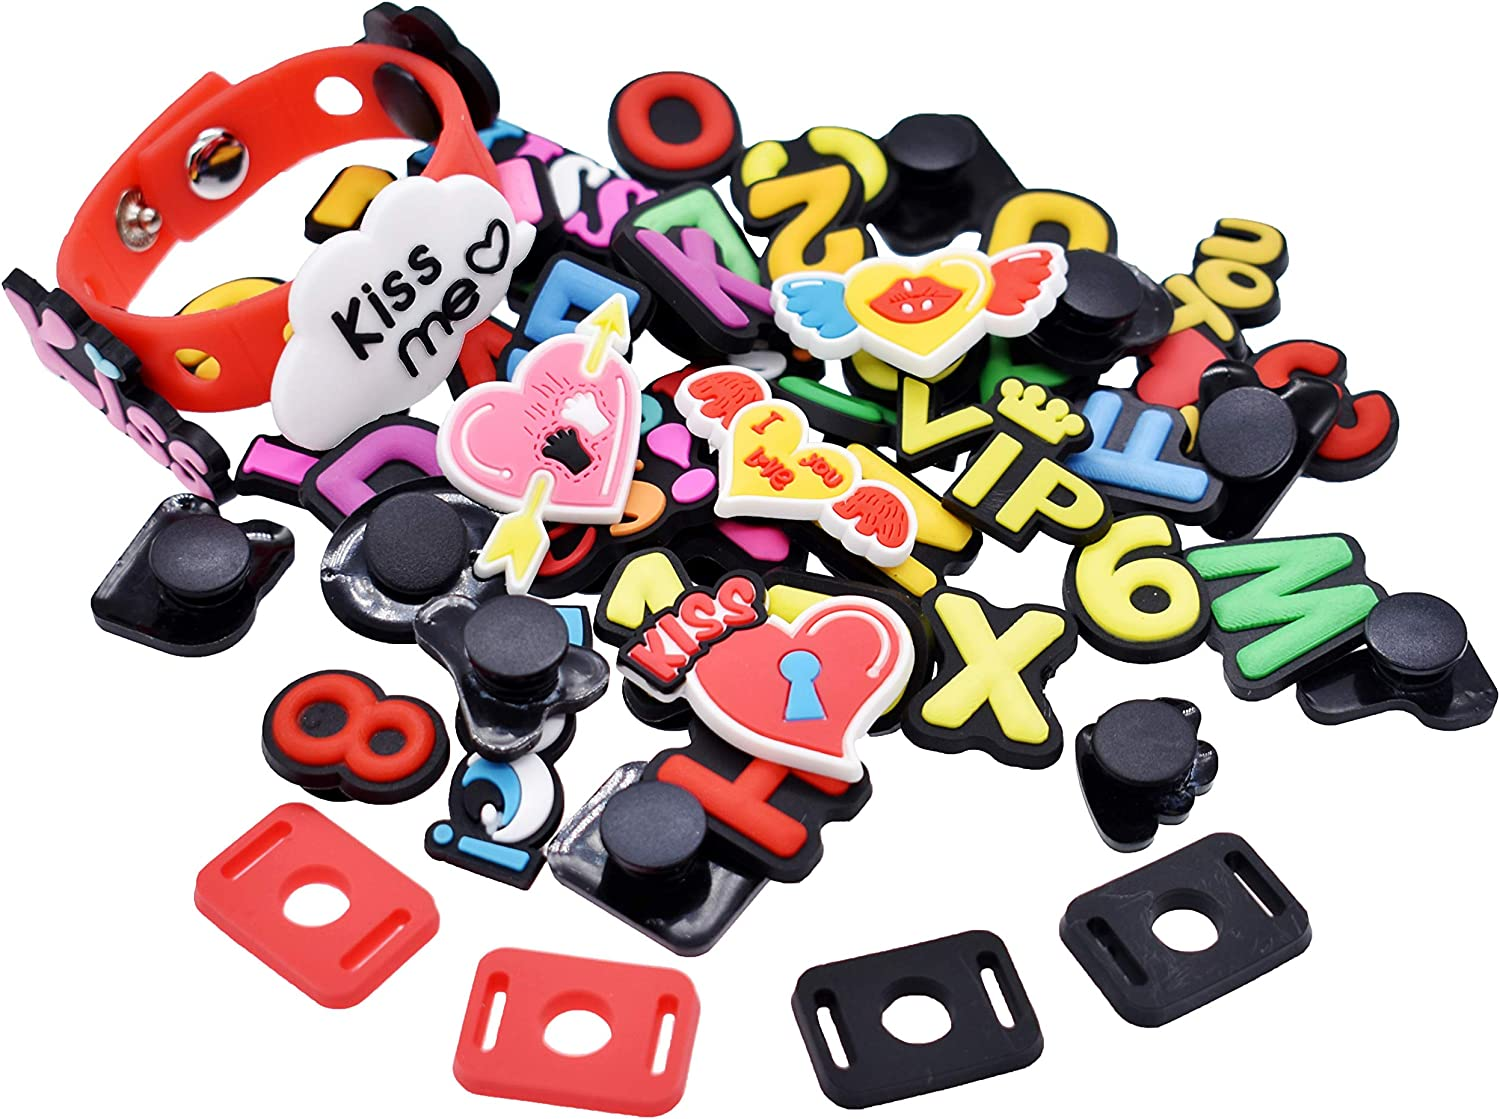 SHINQEAR 100pcs PVC Volleyball Colored Ball Football Rugby Letters Numbers Croc Shoe Charms Fits for Clog Shoes Wristband Bracelet Party Gifts